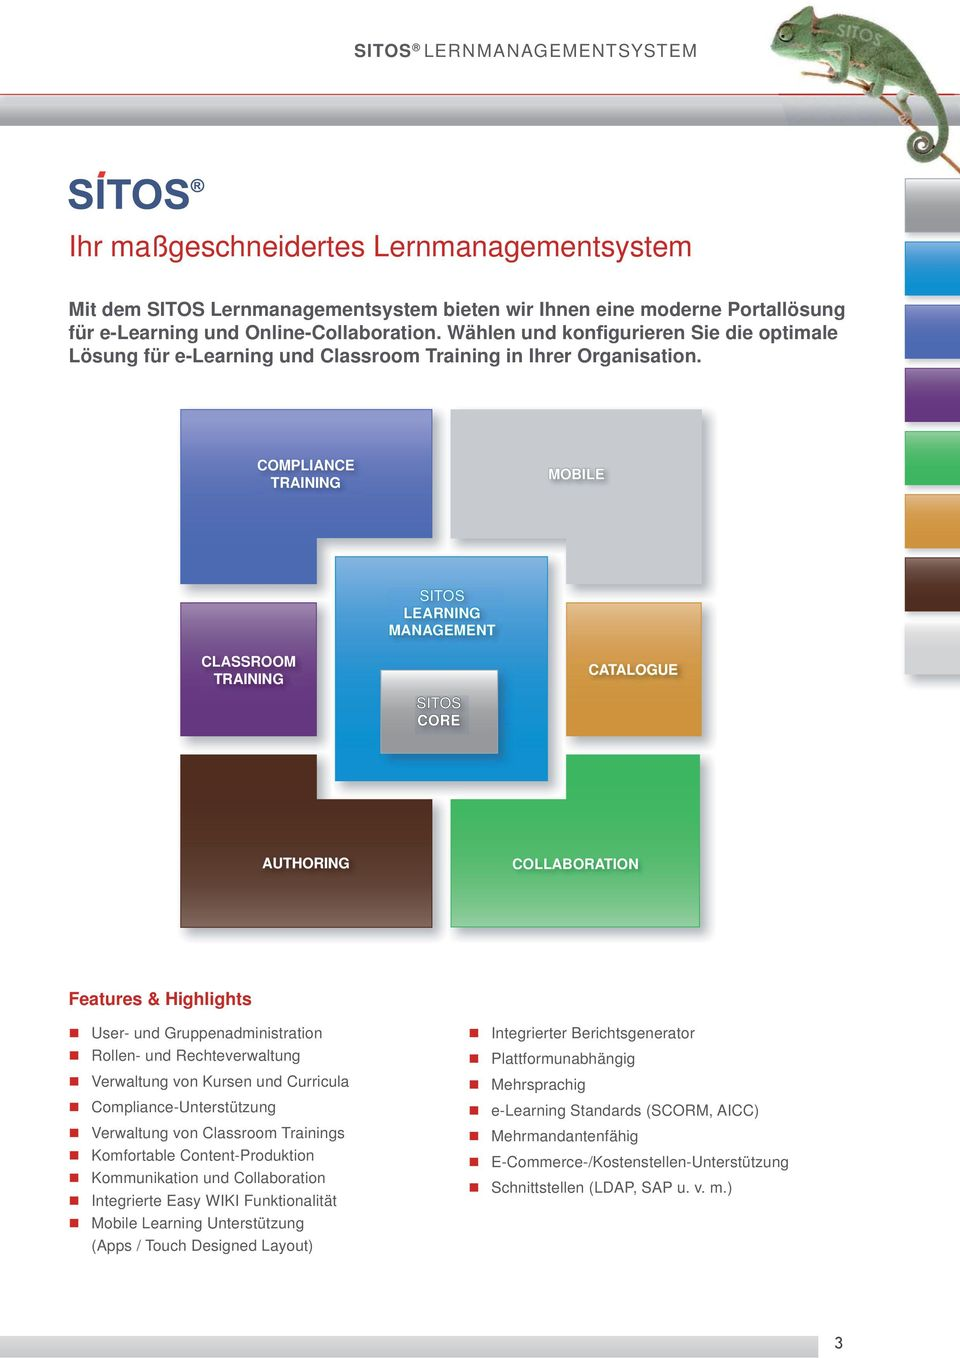 COMPLIANCE TRAINING MOBILE CLASSROOM TRAINING SITOS LEARNING MANAGEMENT SITOS CORE CATALOGUE AUTHORING COLLABORATION Features & Highlights User- und Gruppenadministration Rollen- und Rechteverwaltung